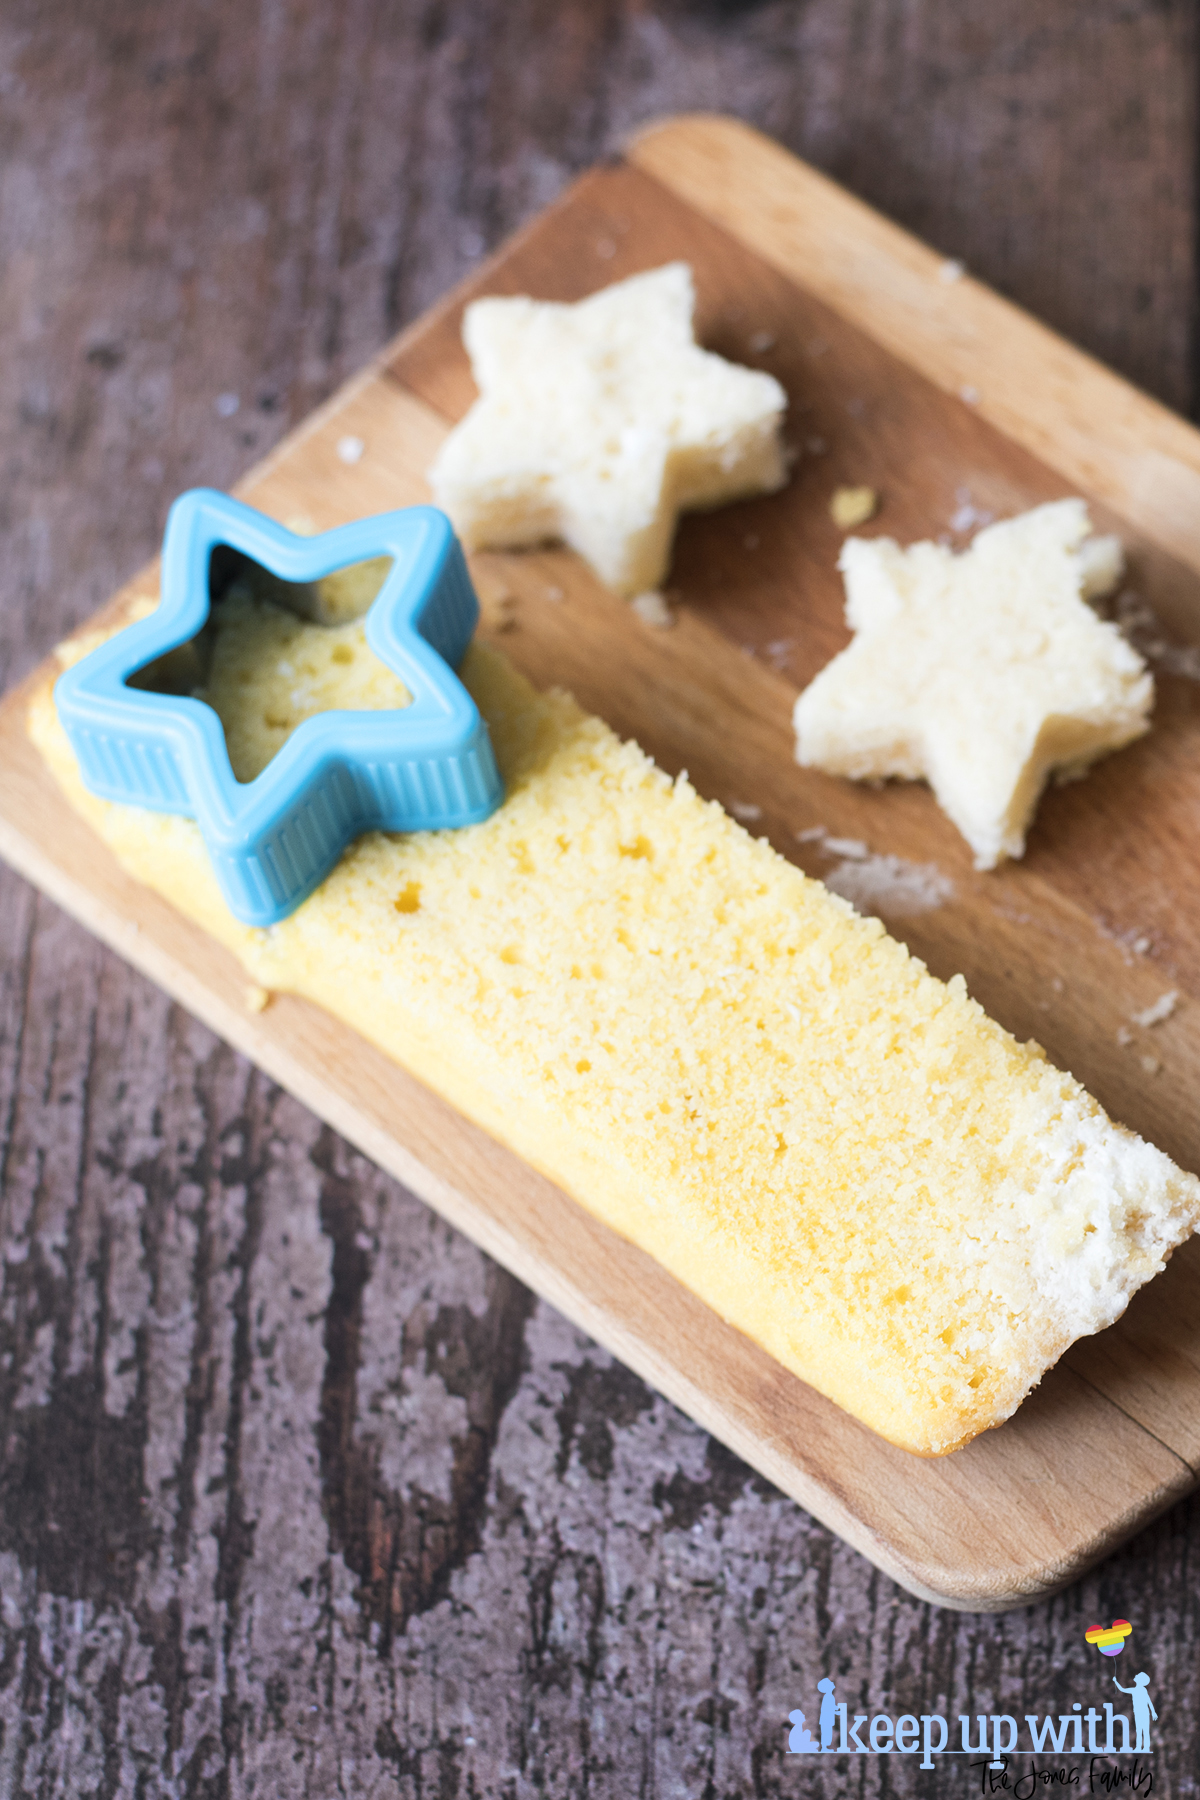 Image shows vanilla angel cake stars being cut from a slice of cake using a blue star cookie cutter, on top of a wooden chopping board, resting on a dark wooden tabletop. Image by Sara-Jayne Jones of Keep Up With The Jones Family.